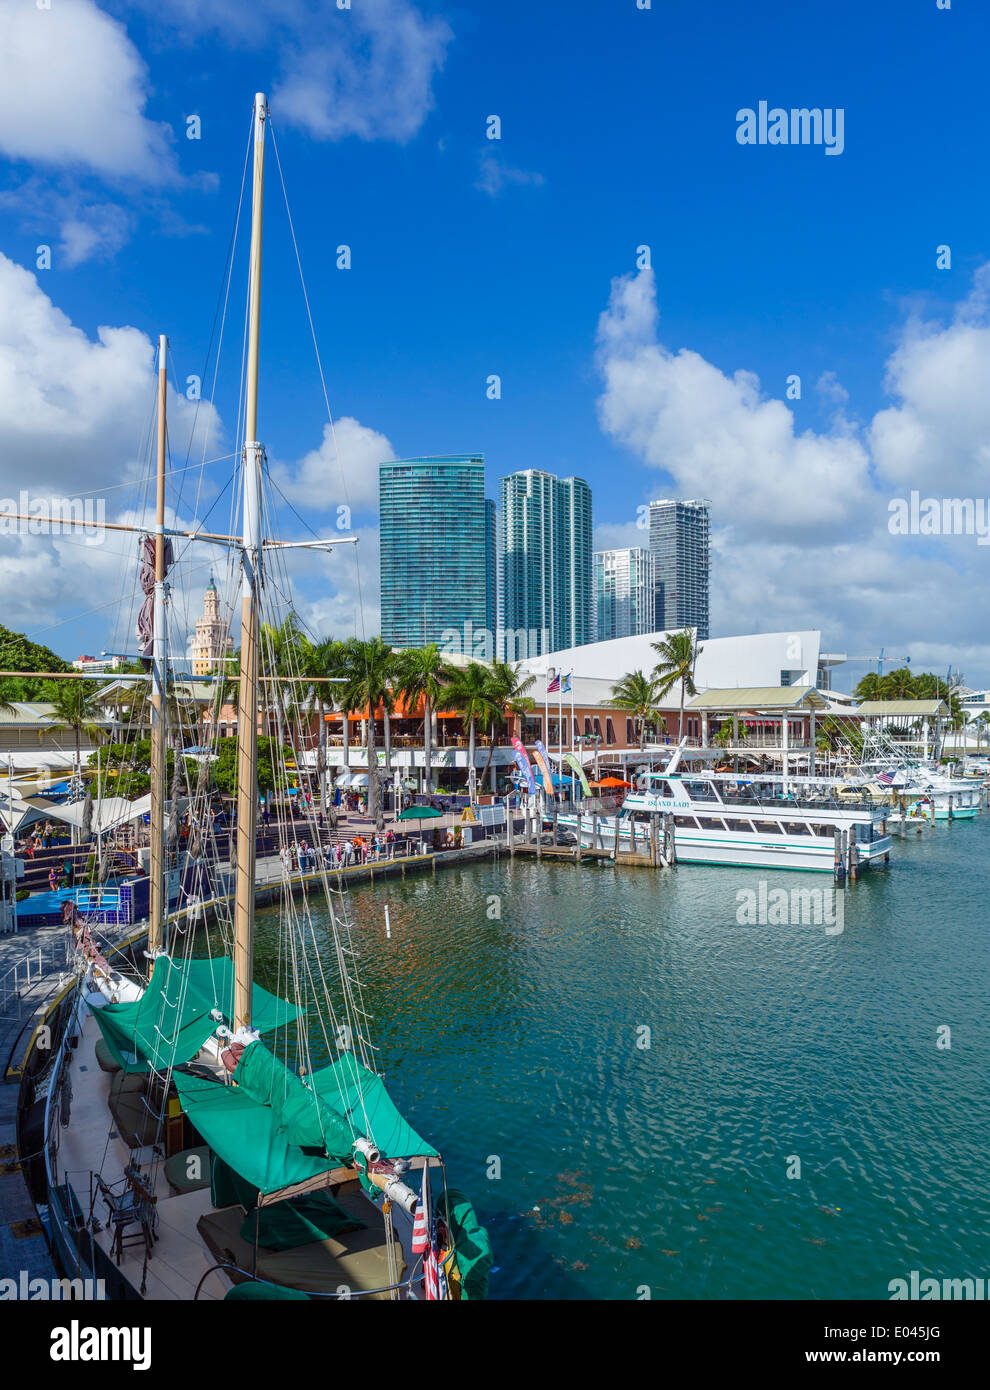 Der Uferpromenade am Bayside Marketplace in Downtown Miami, Florida, USA Stockfoto